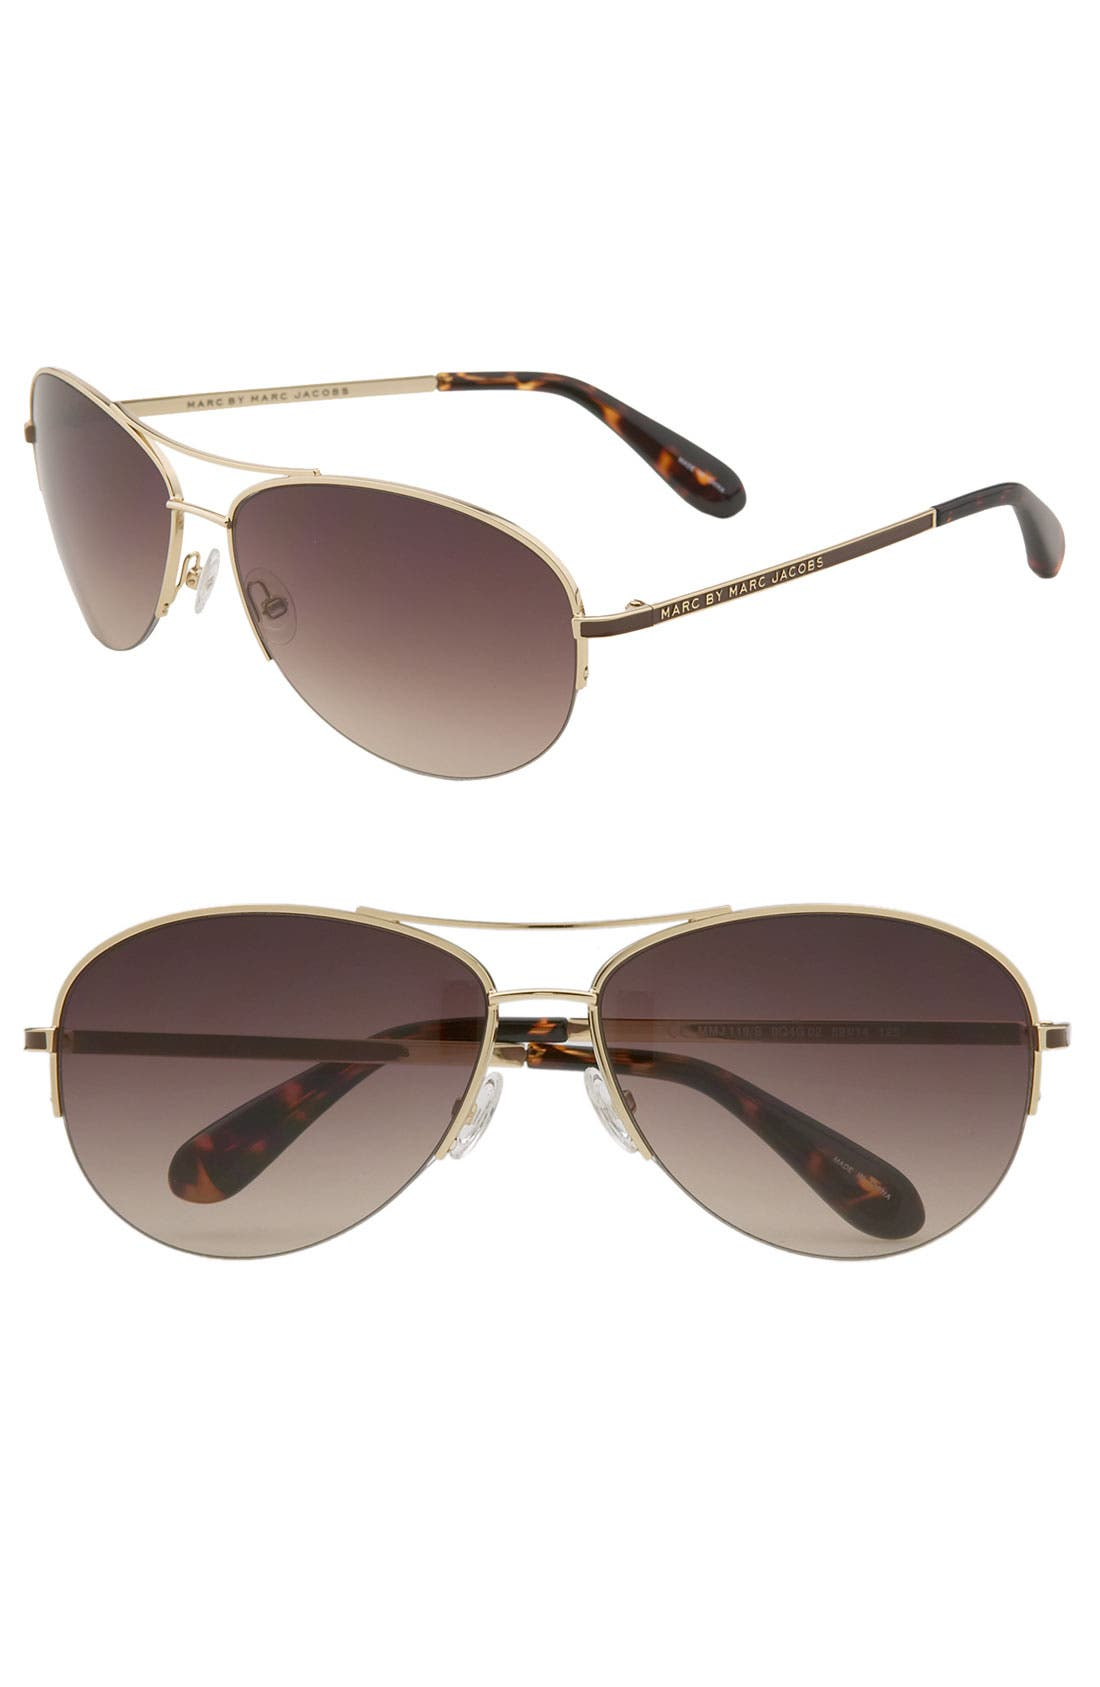 Main Image - MARC BY MARC JACOBS 59mm Rimless Aviator Sunglasses